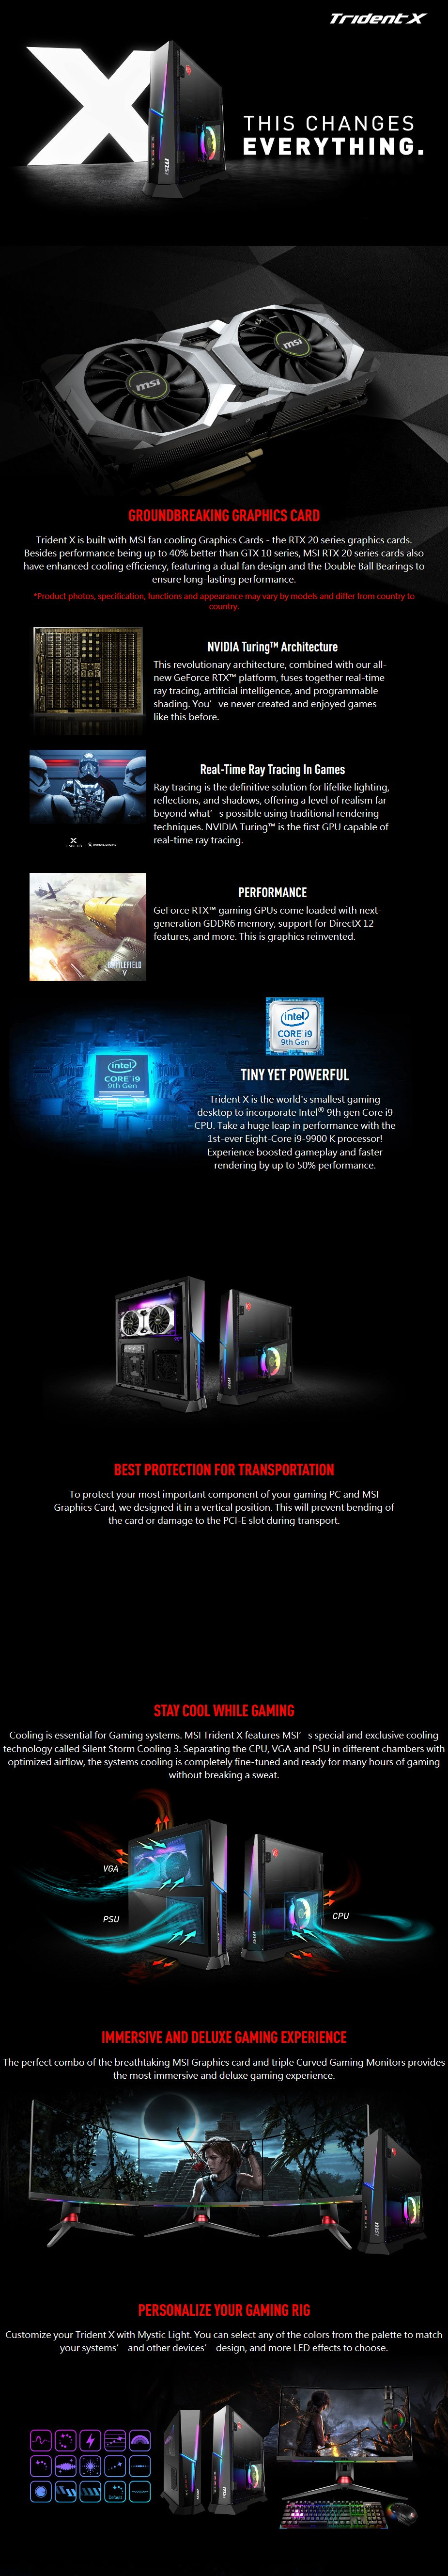 MSI Trident X 9th Compact Gaming PC i7-9700K 16GB 1TB+512GB RTX2070 Win10 Home - Desktop Overview 1